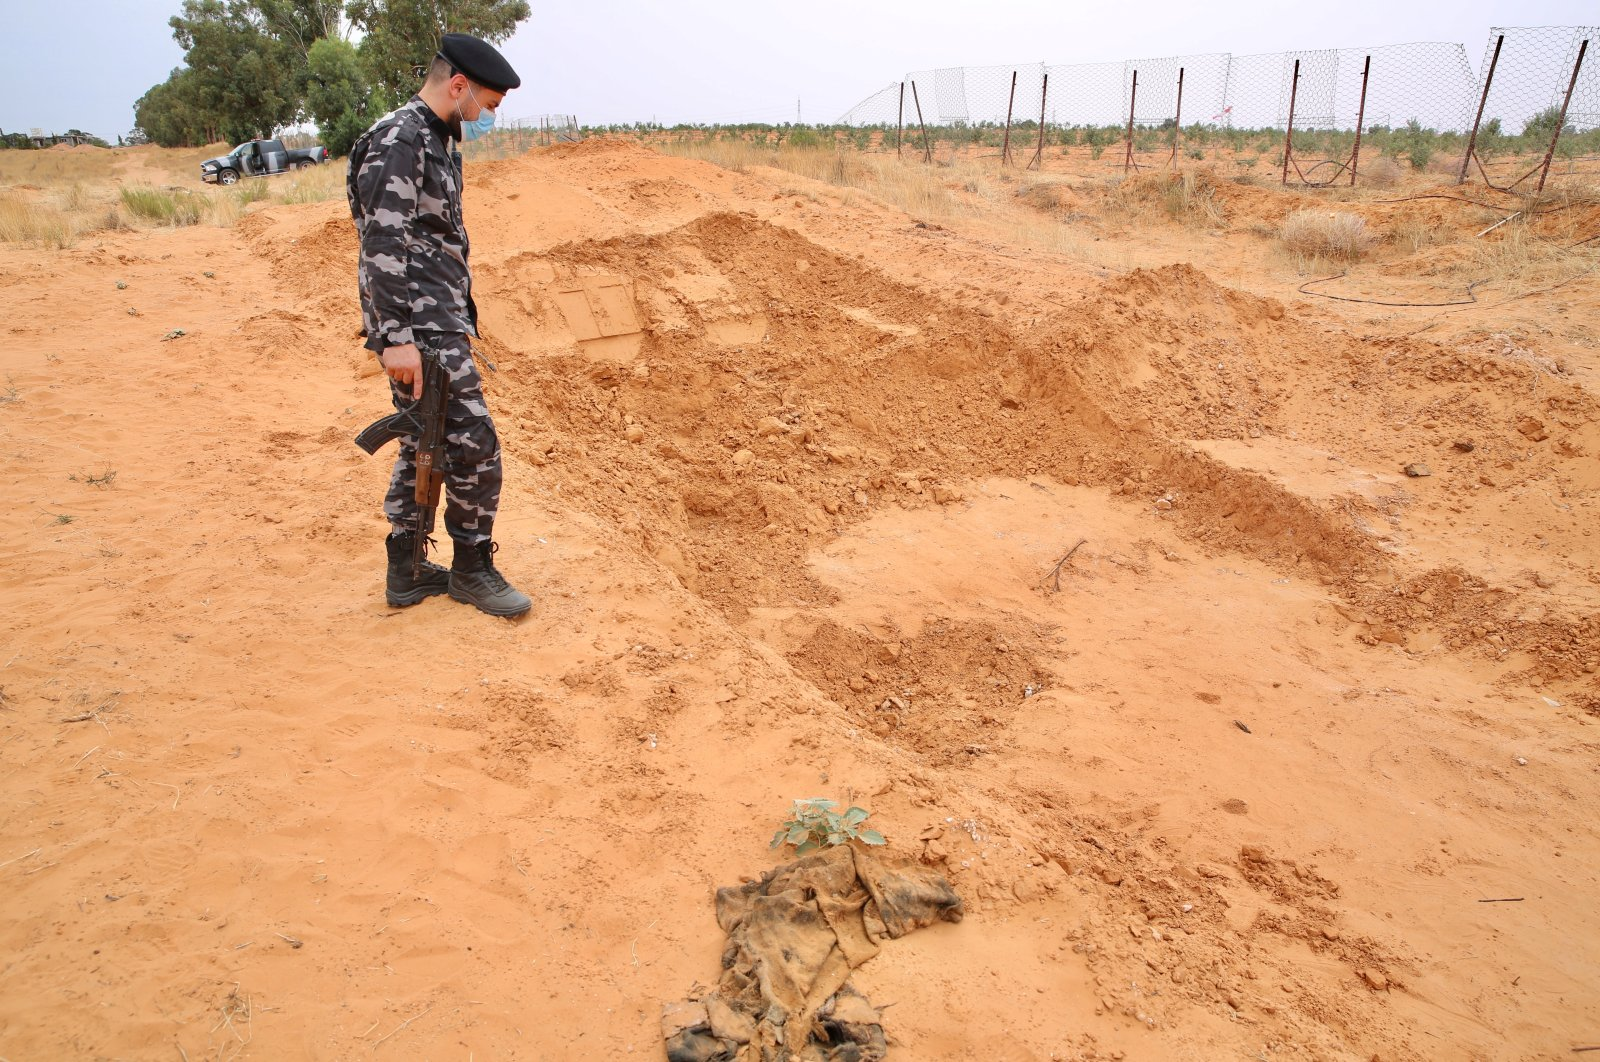 Libyan security forces inspect the site where mass graves were found in the city of Tarhuna, liberated from Khalifa Haftar's militias, Libya, June 12, 2020. (AA Photo)